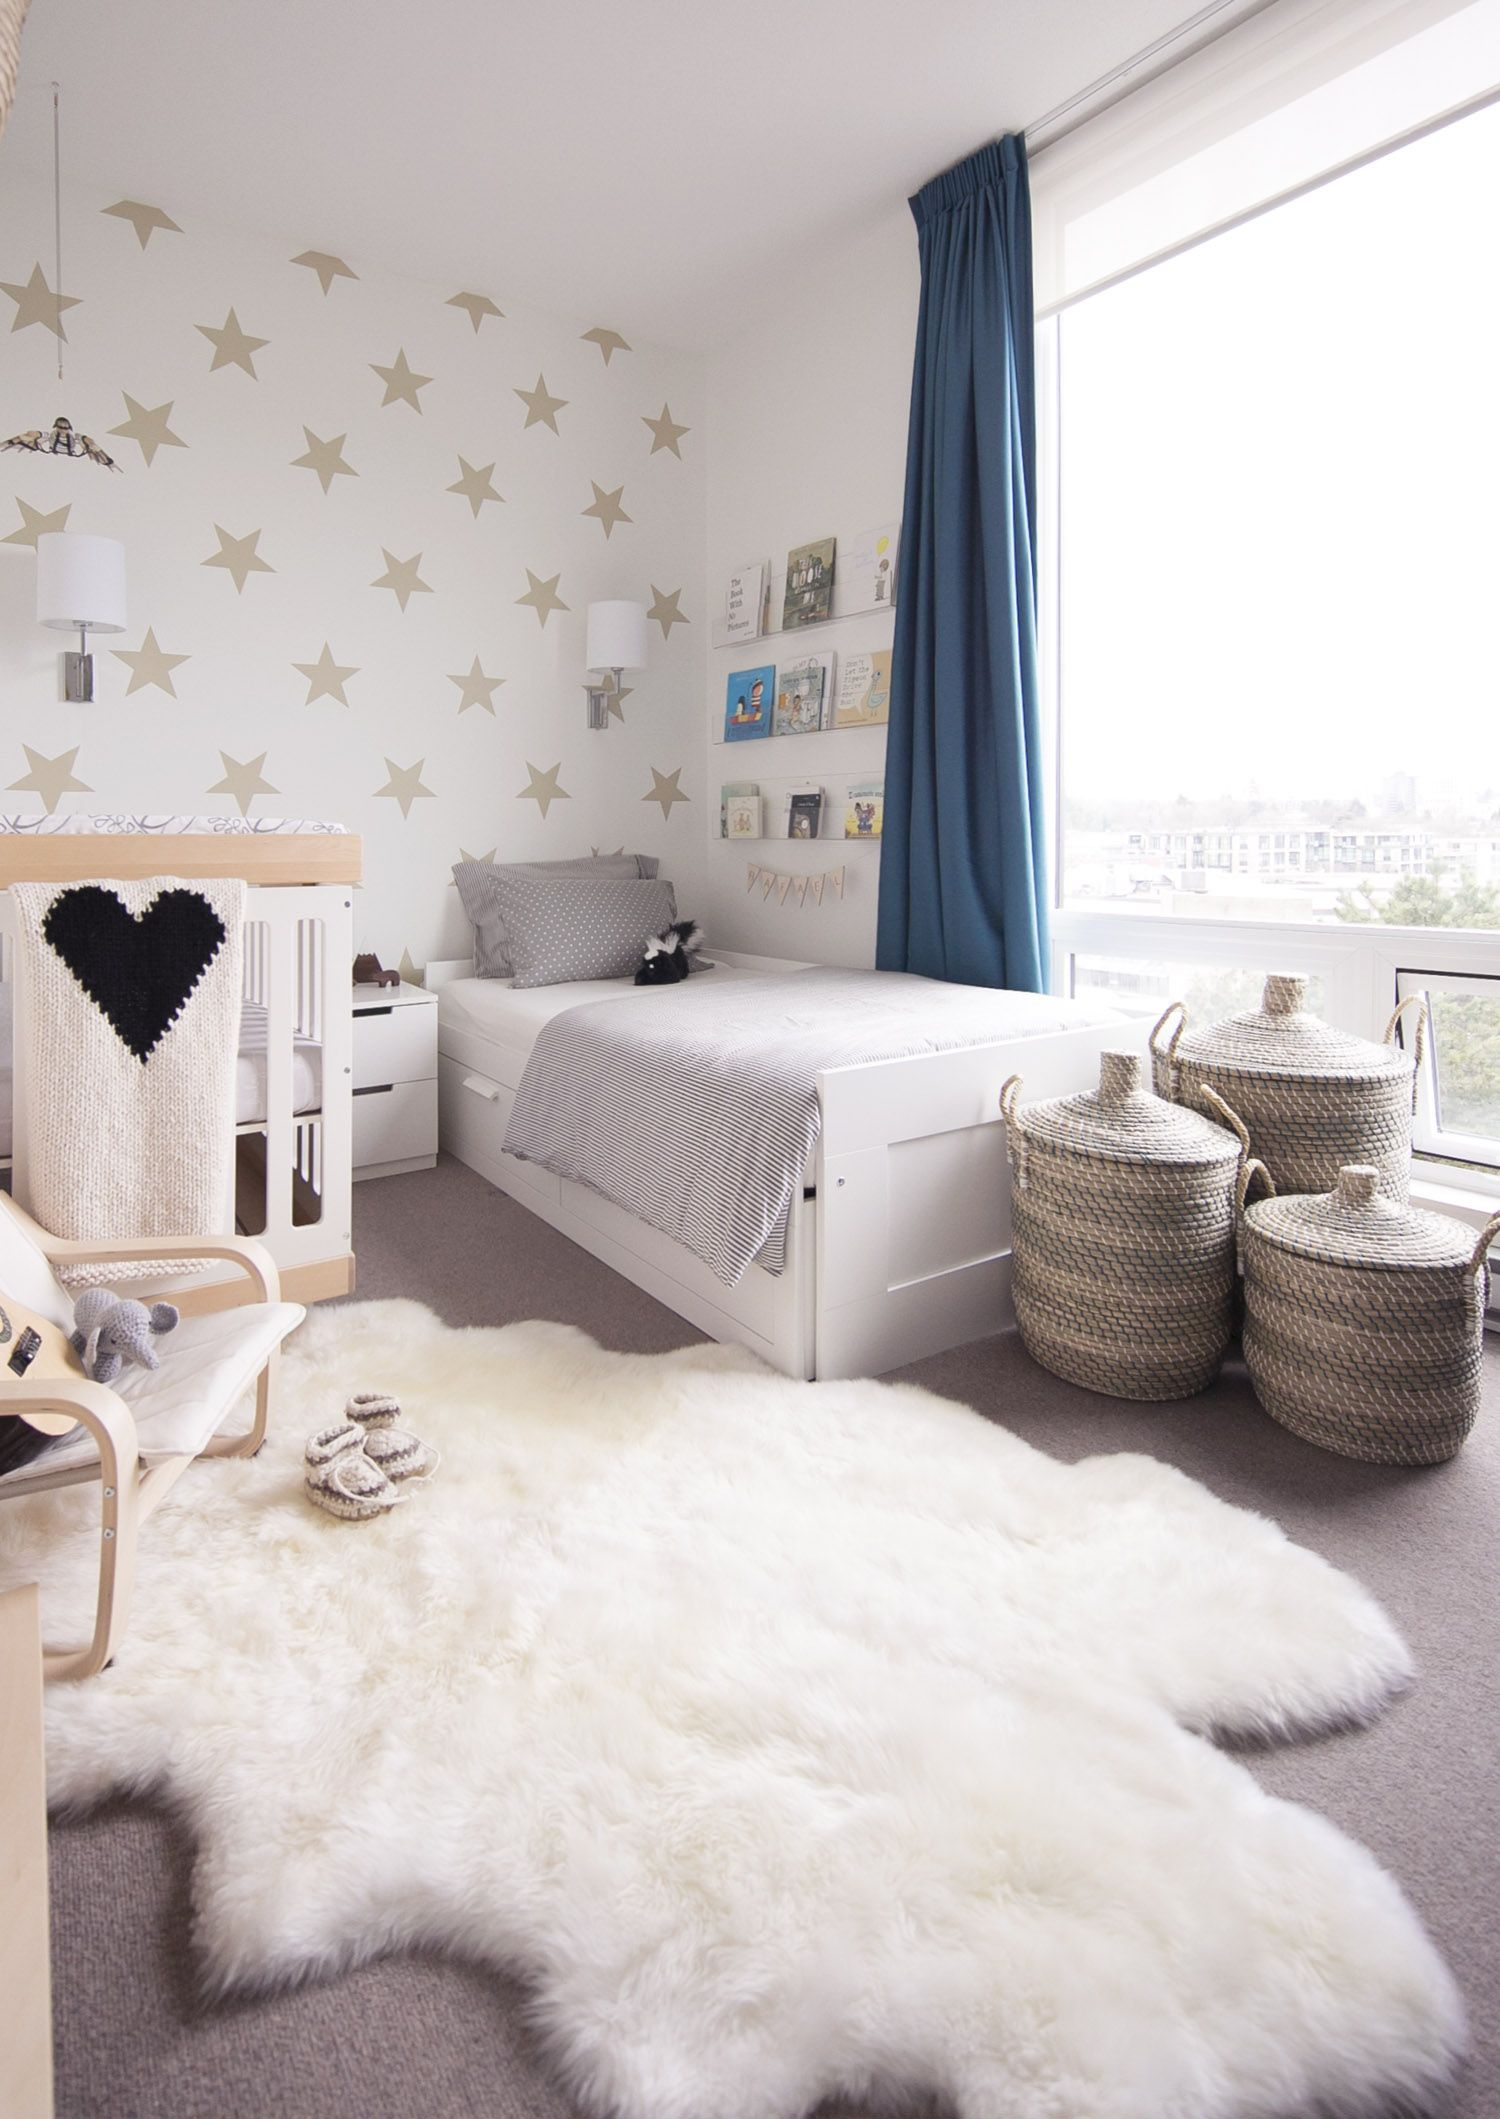 Stupendous Baby And Toddler Room Kids Room Rugs Toddler Baby Room Interior Design Ideas Greaswefileorg